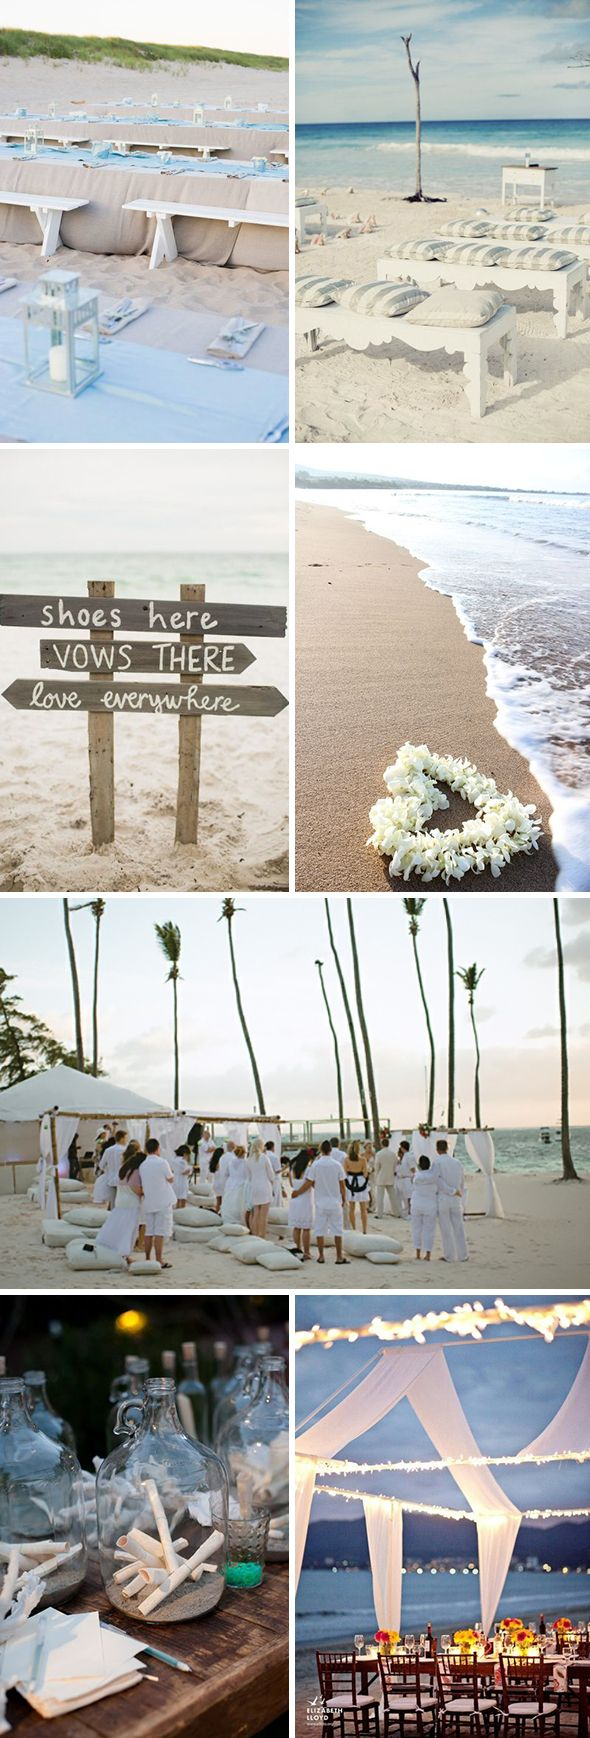 Love the Benches instead of chairs! Simple Beach Wedding Ideas | The Destination Wedding Blog - Jet Fete by Bridal Bar